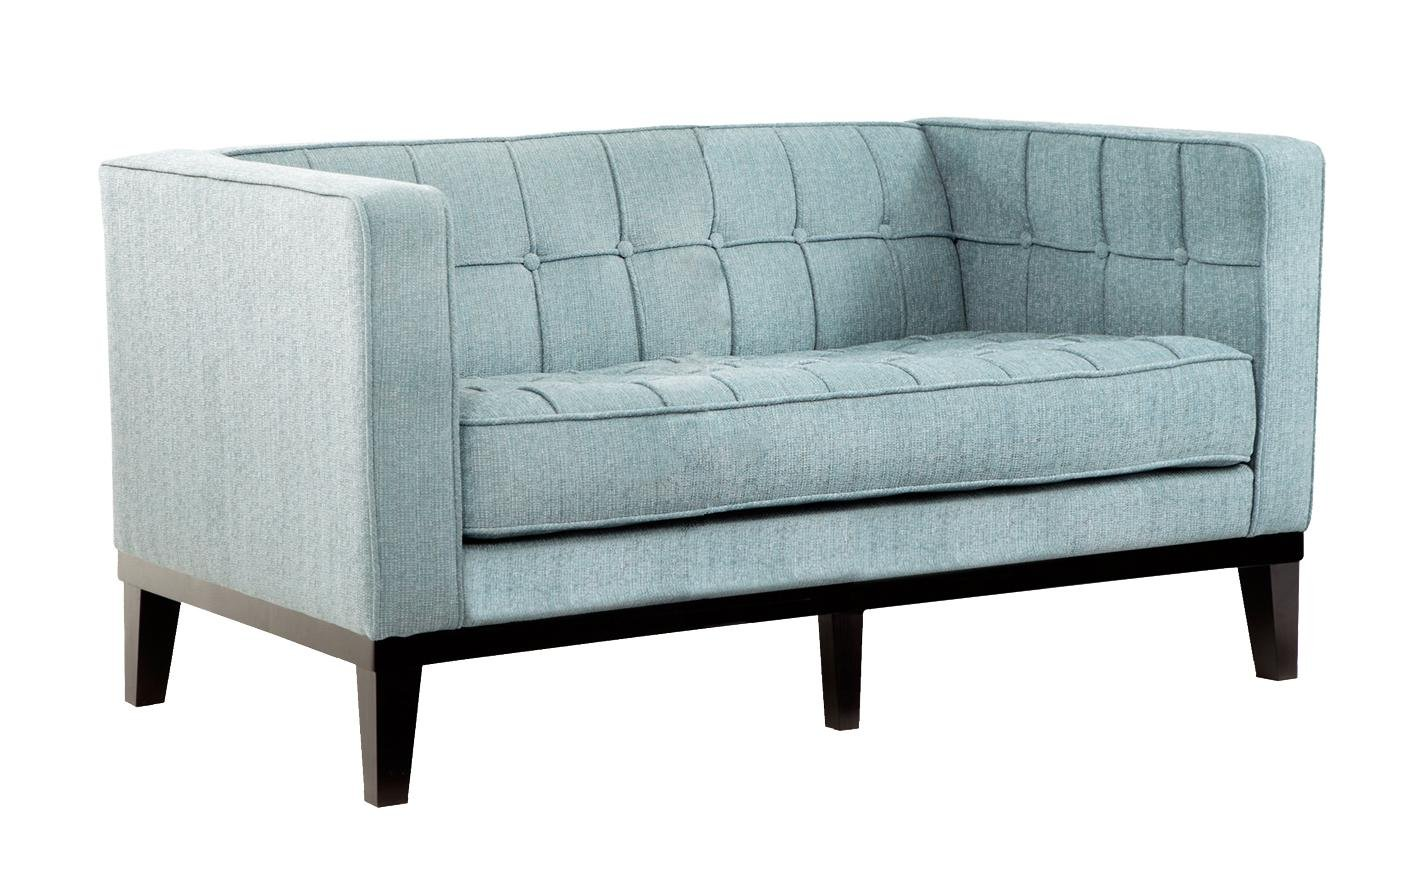 Armen Living LC10102SB Roxbury Loveseat in Spa Blue Fabric and Black Wood Finish